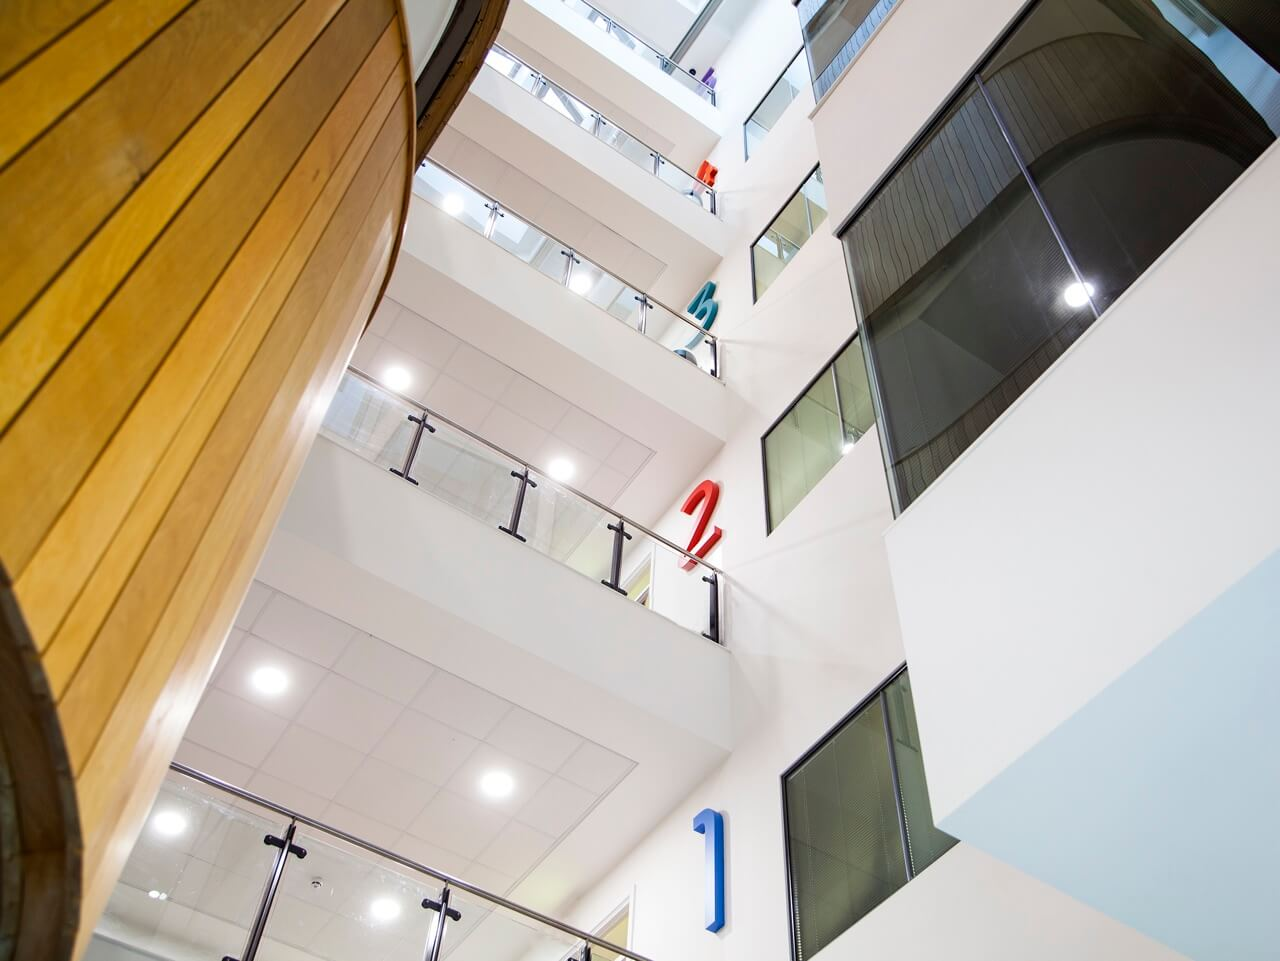 Design-led wayfinding defines each floor at award-winning Rochdale Sixth Form College